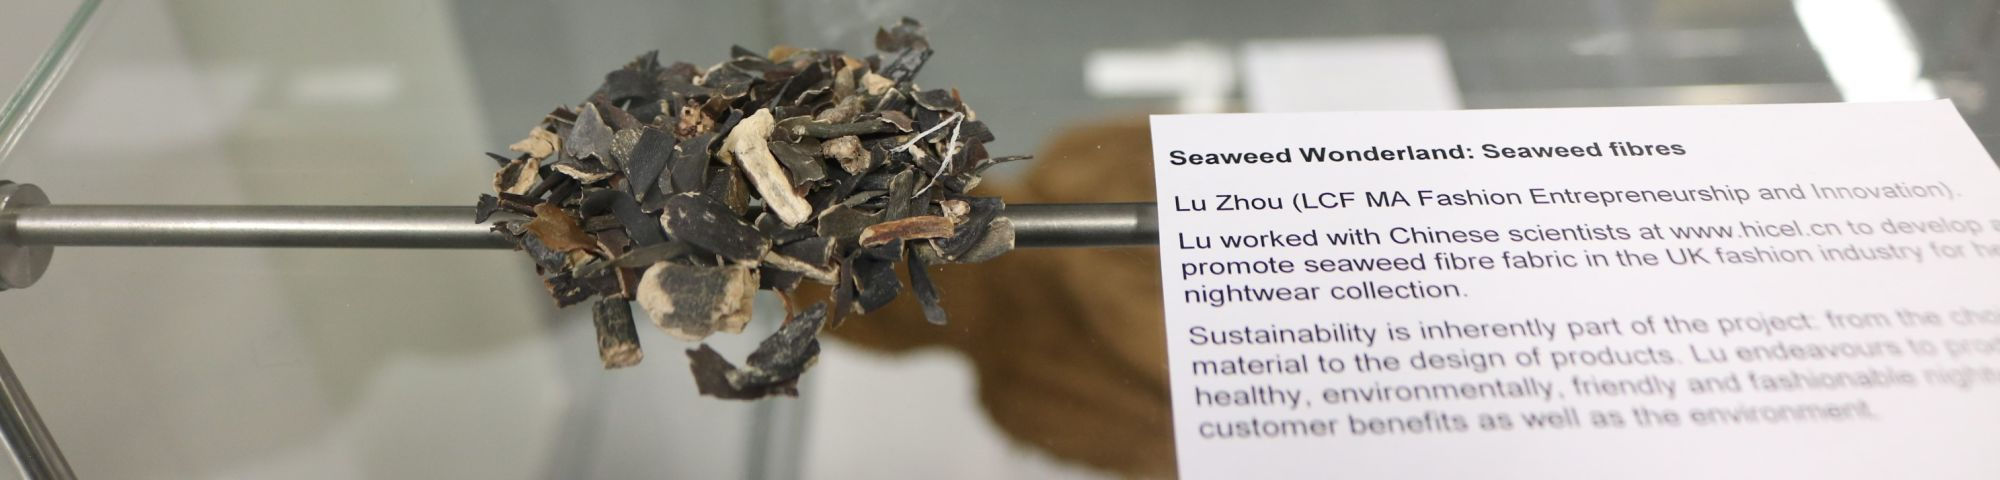 photograph of display cabinet contents and typed description